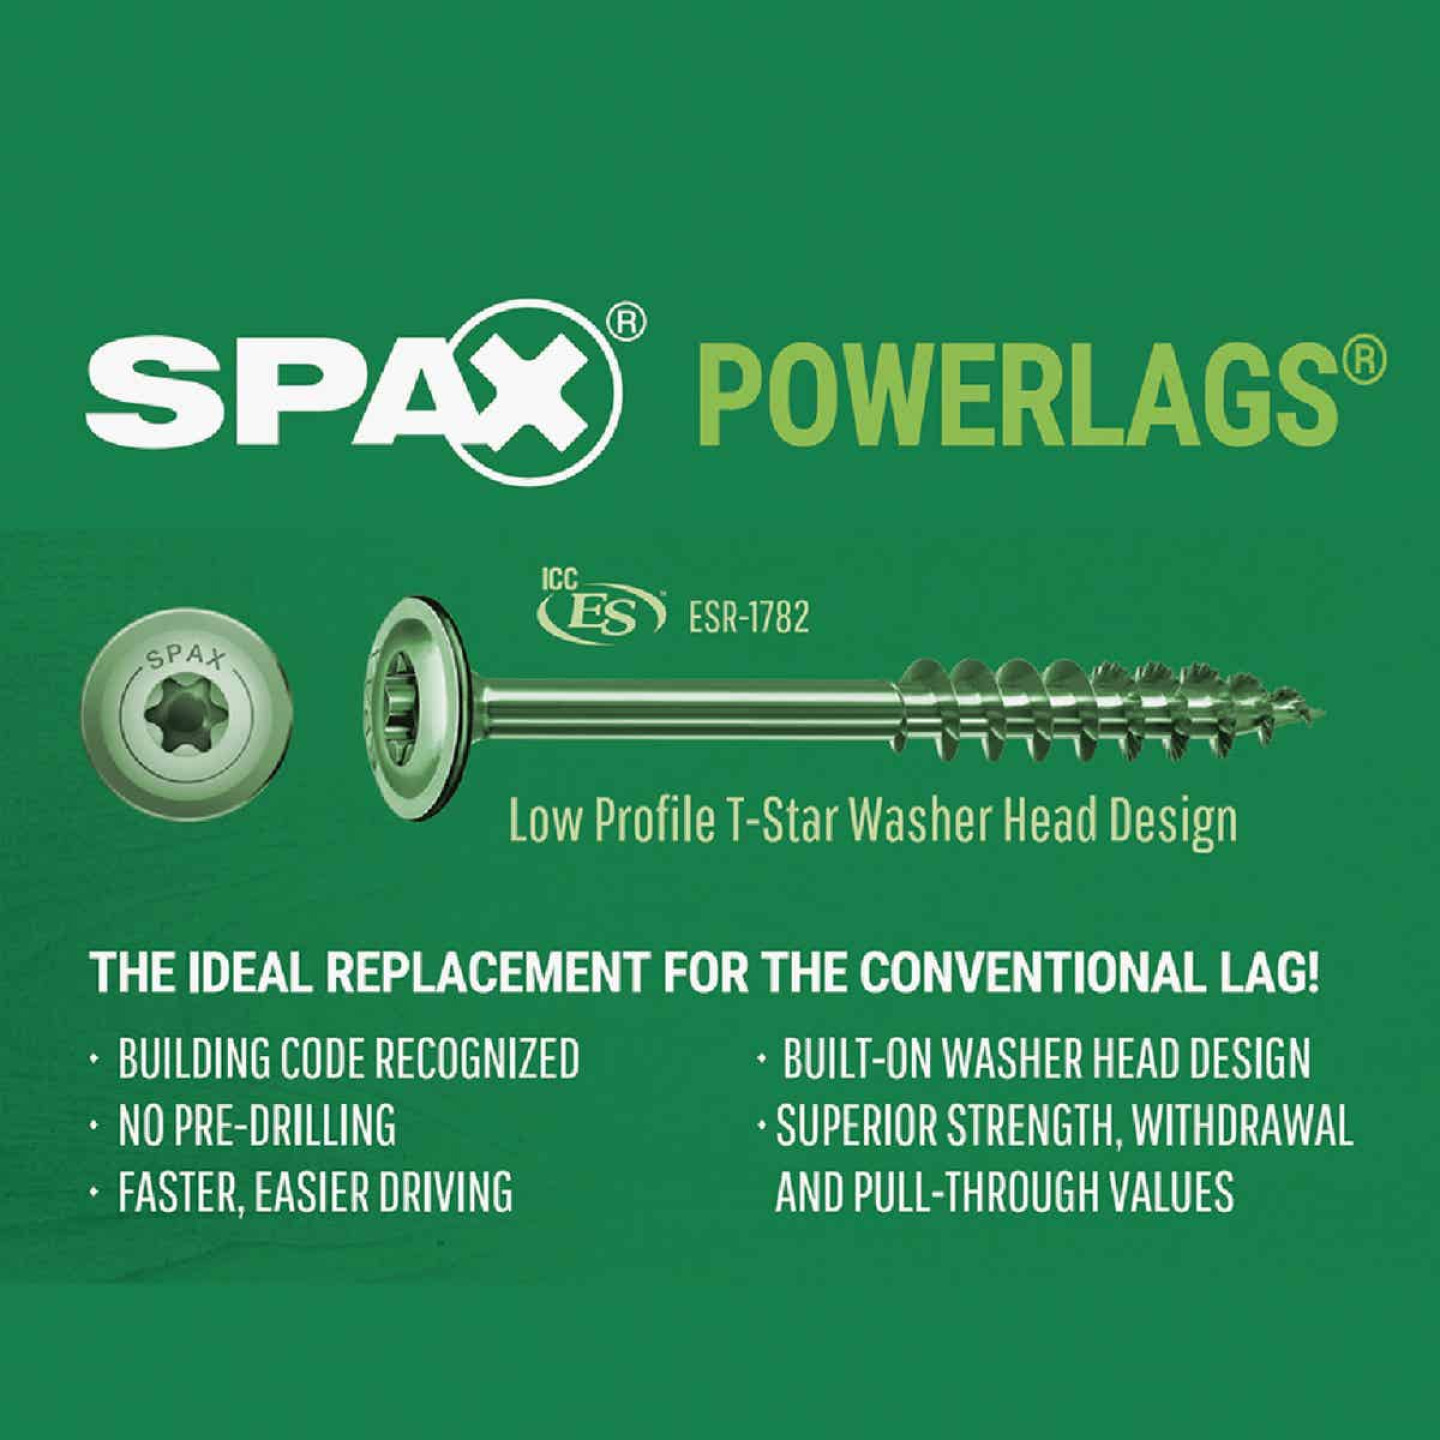 Spax PowerLags 5/16 In. x 10 In. Washer Head Exterior Structure Screw (12 Ct.) Image 4